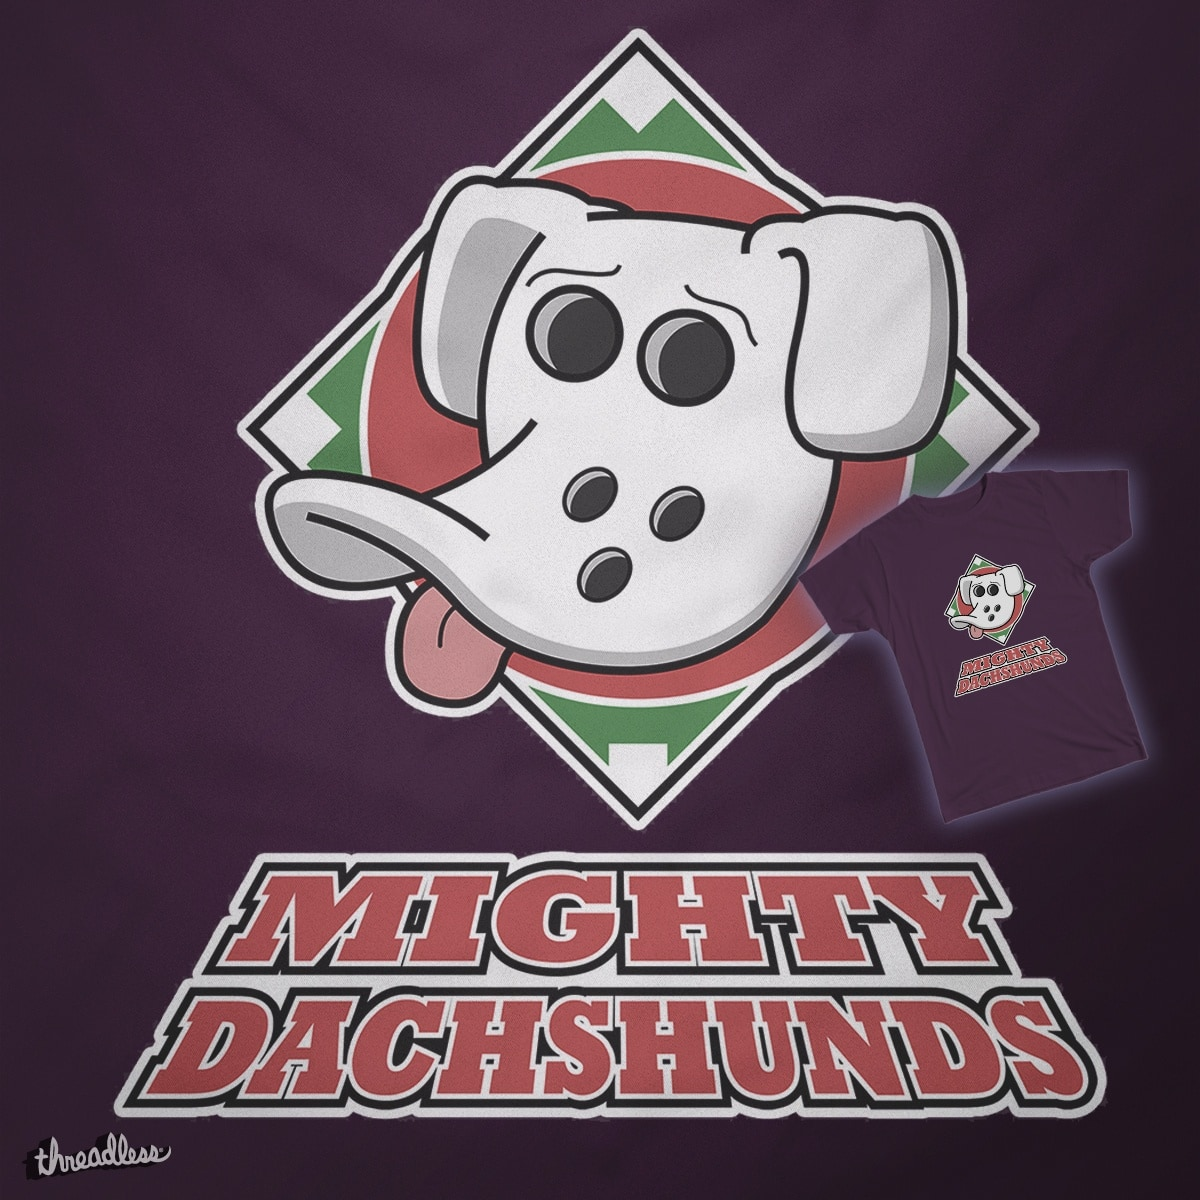 Mighty Dachshunds by johnmazz on Threadless